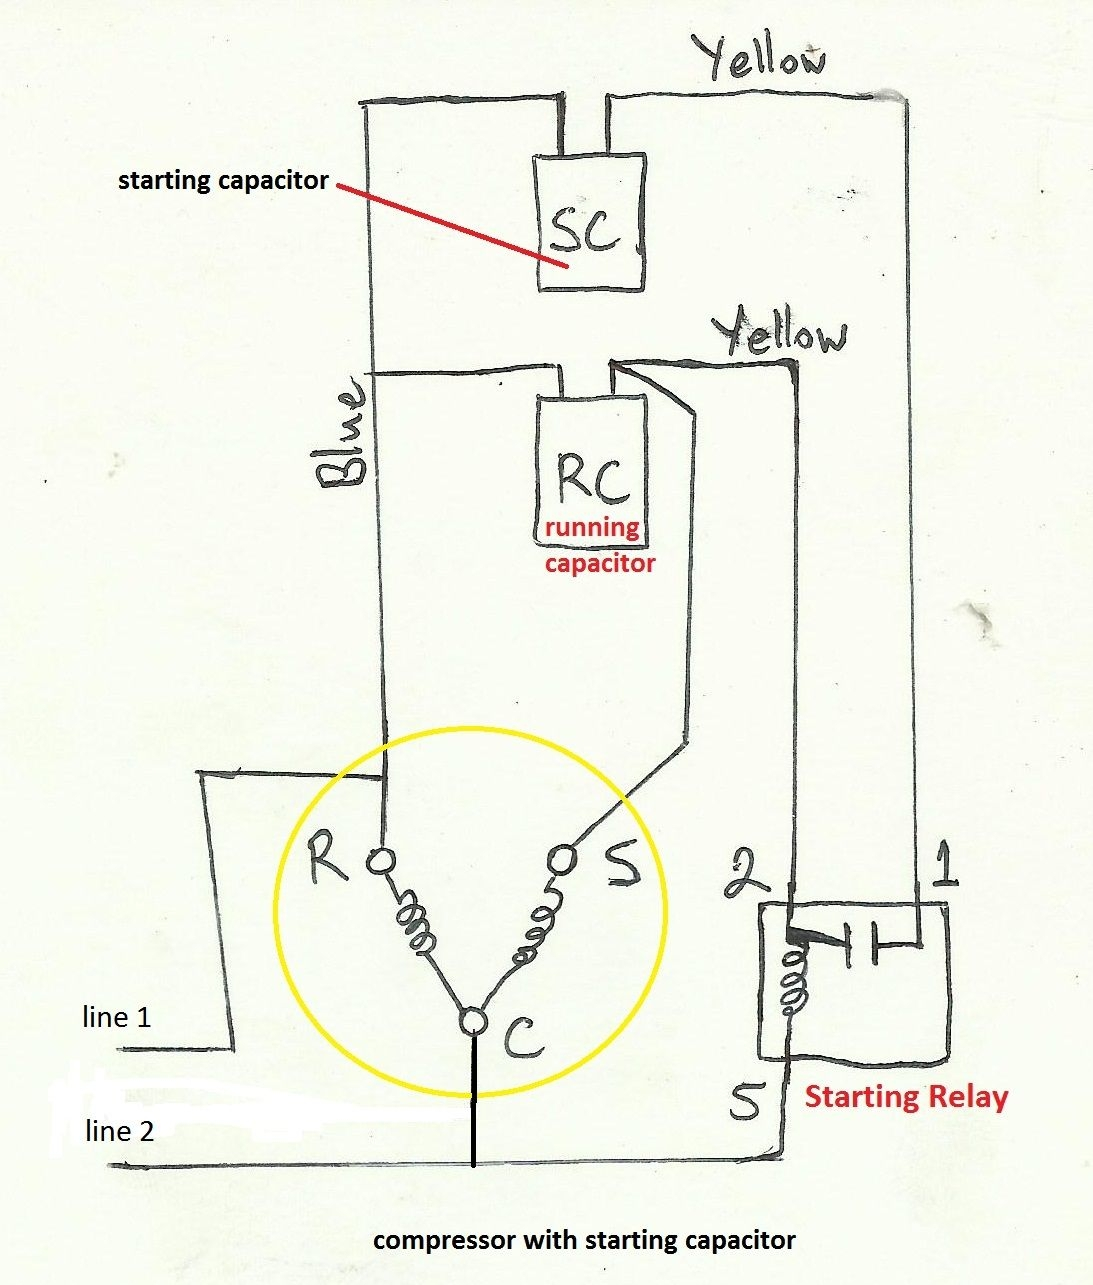 Baldor Wiring Diagrams - Wiring Diagram Inside on baldor dc generator wiring diagram, 115 230 motor wiring diagrams, motor capacitor wiring diagrams, 110-volt vacuum motor wiring diagrams, baldor 115 volt motor wiring diagram, baldor ac drives, single phase capacitor motor diagrams, single phase induction motor wiring diagrams, three-phase transformer connection diagrams, baldor single phase motor wiring,